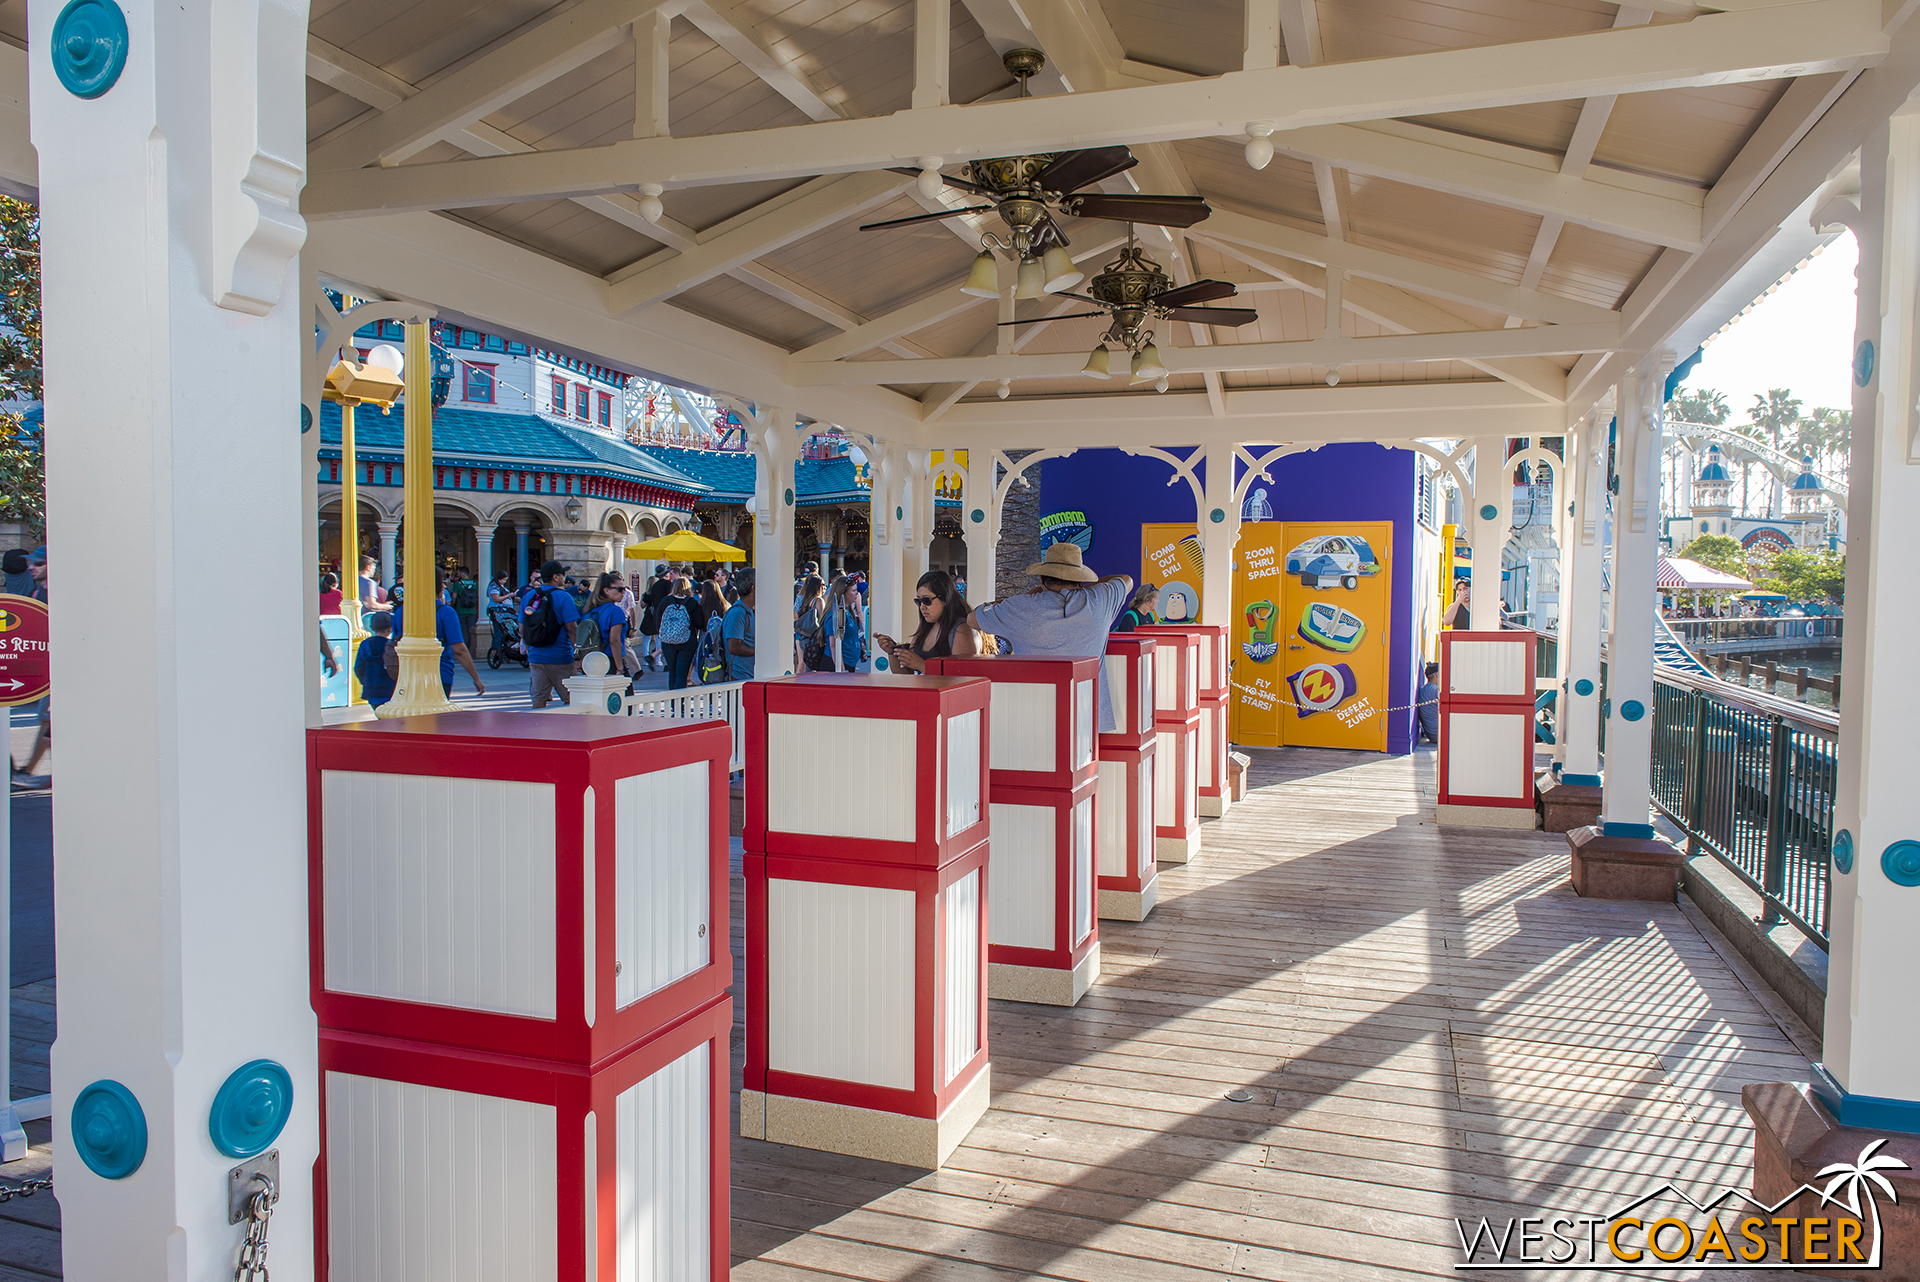 Fastpasses for Toy Story and the Incredicoaster can be obtained here.